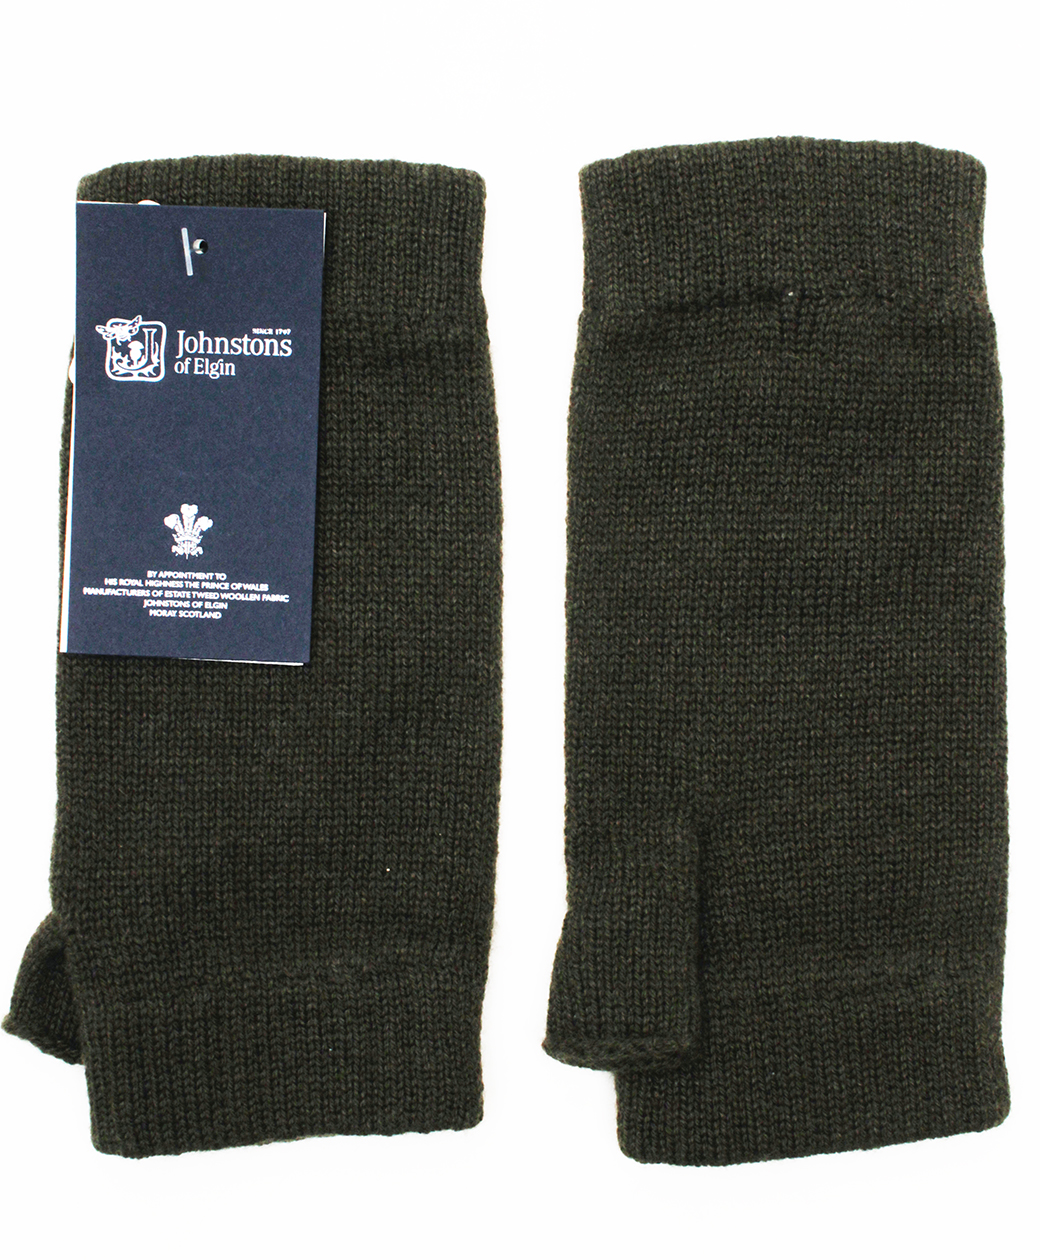 Johnstons of Elgin Wristwaemers(Olive)